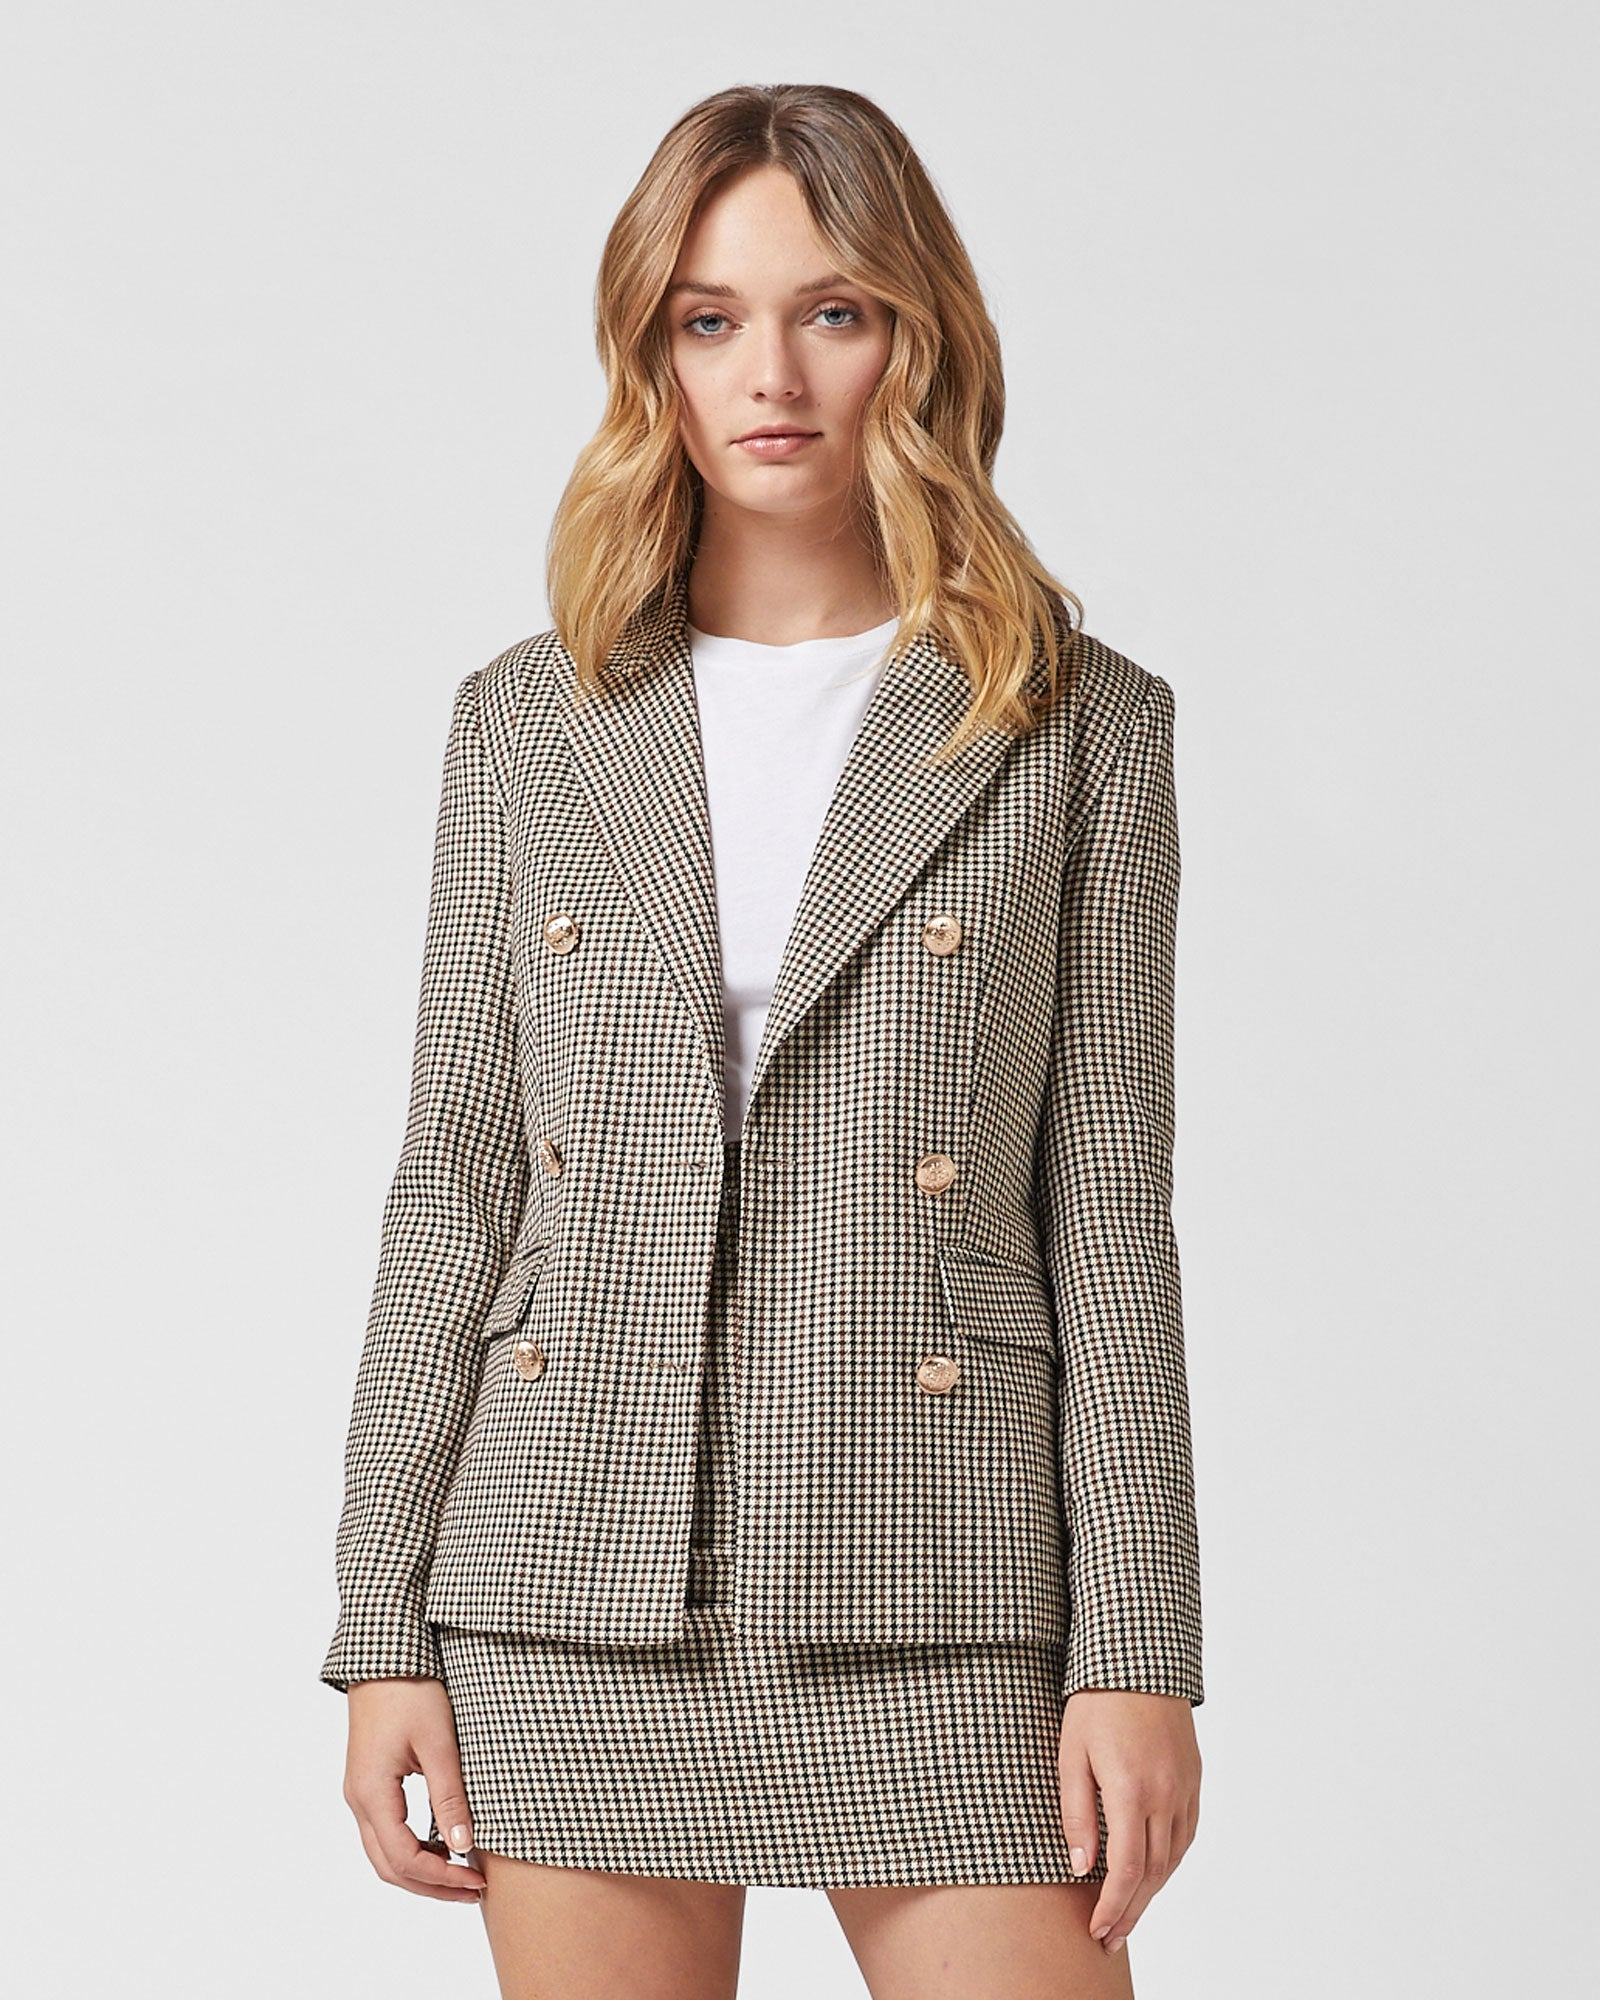 MY FORGOTTEN FAVOURITE BLAZER